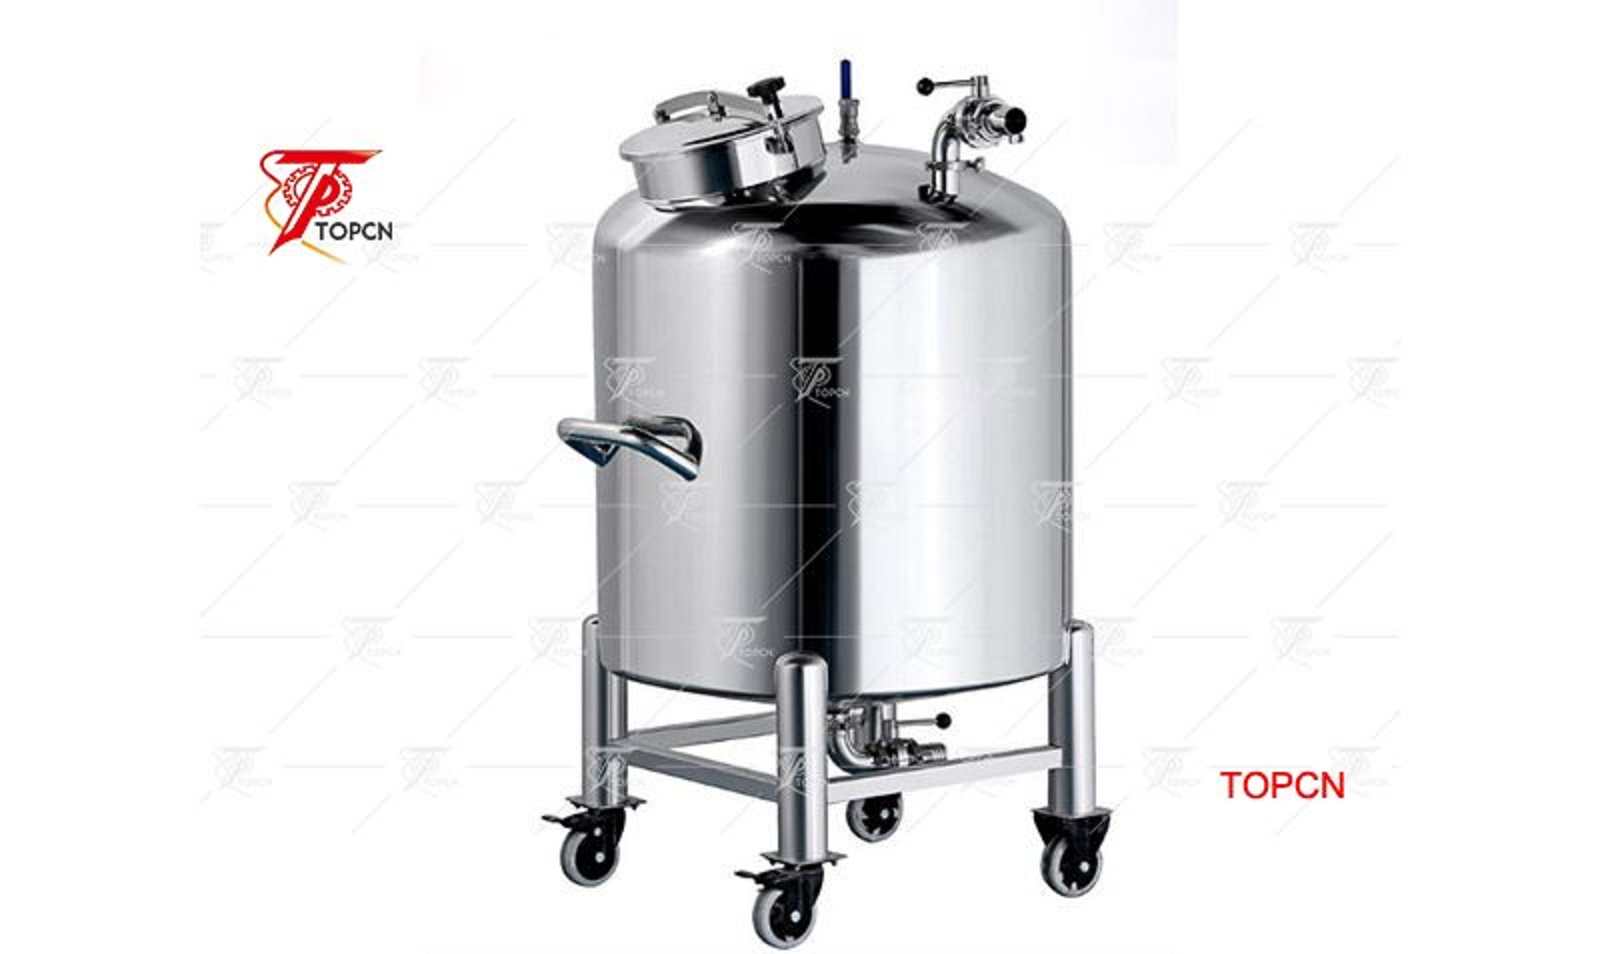 Square Stainless Steel Storage Tank For Food